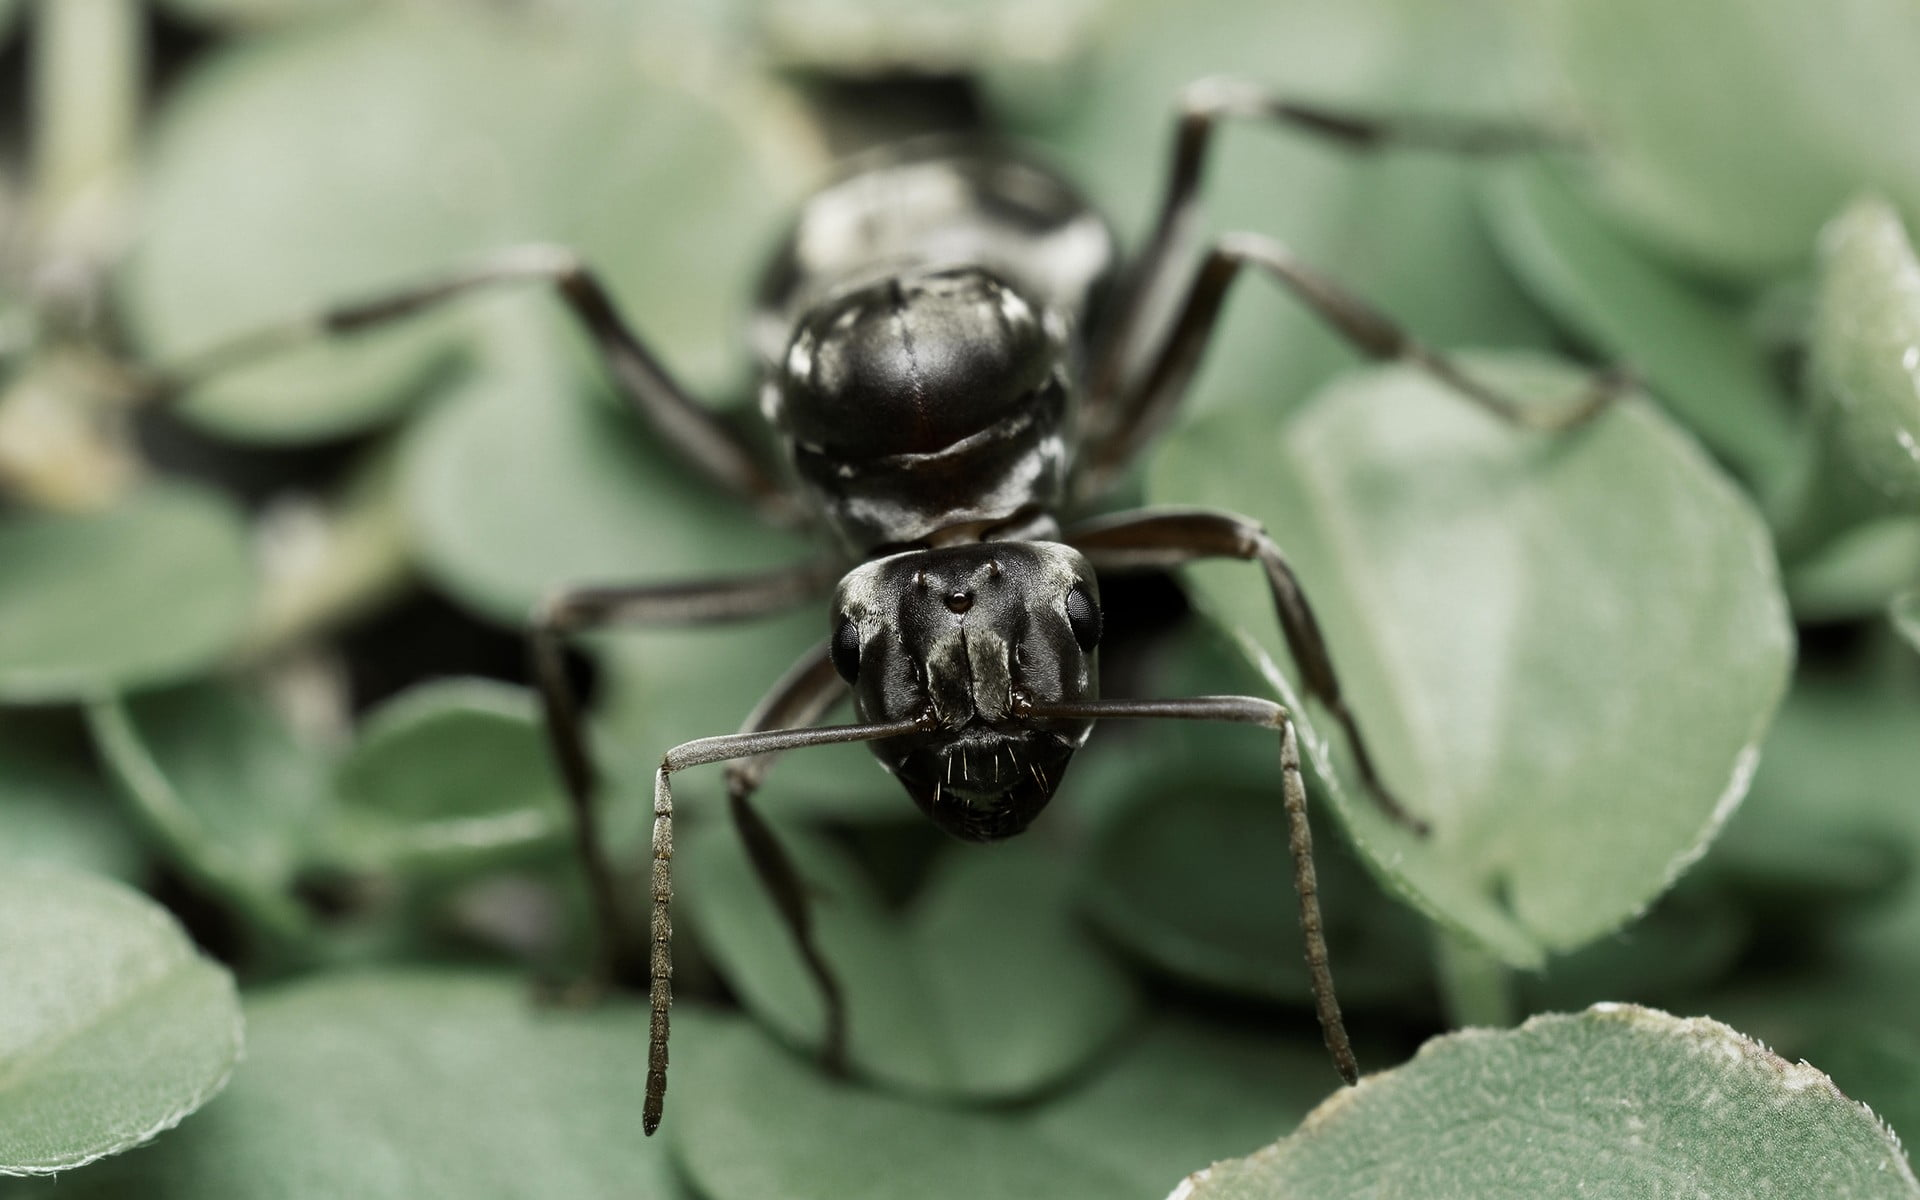 Black carpenter ant, ants, nature, insect, macro HD